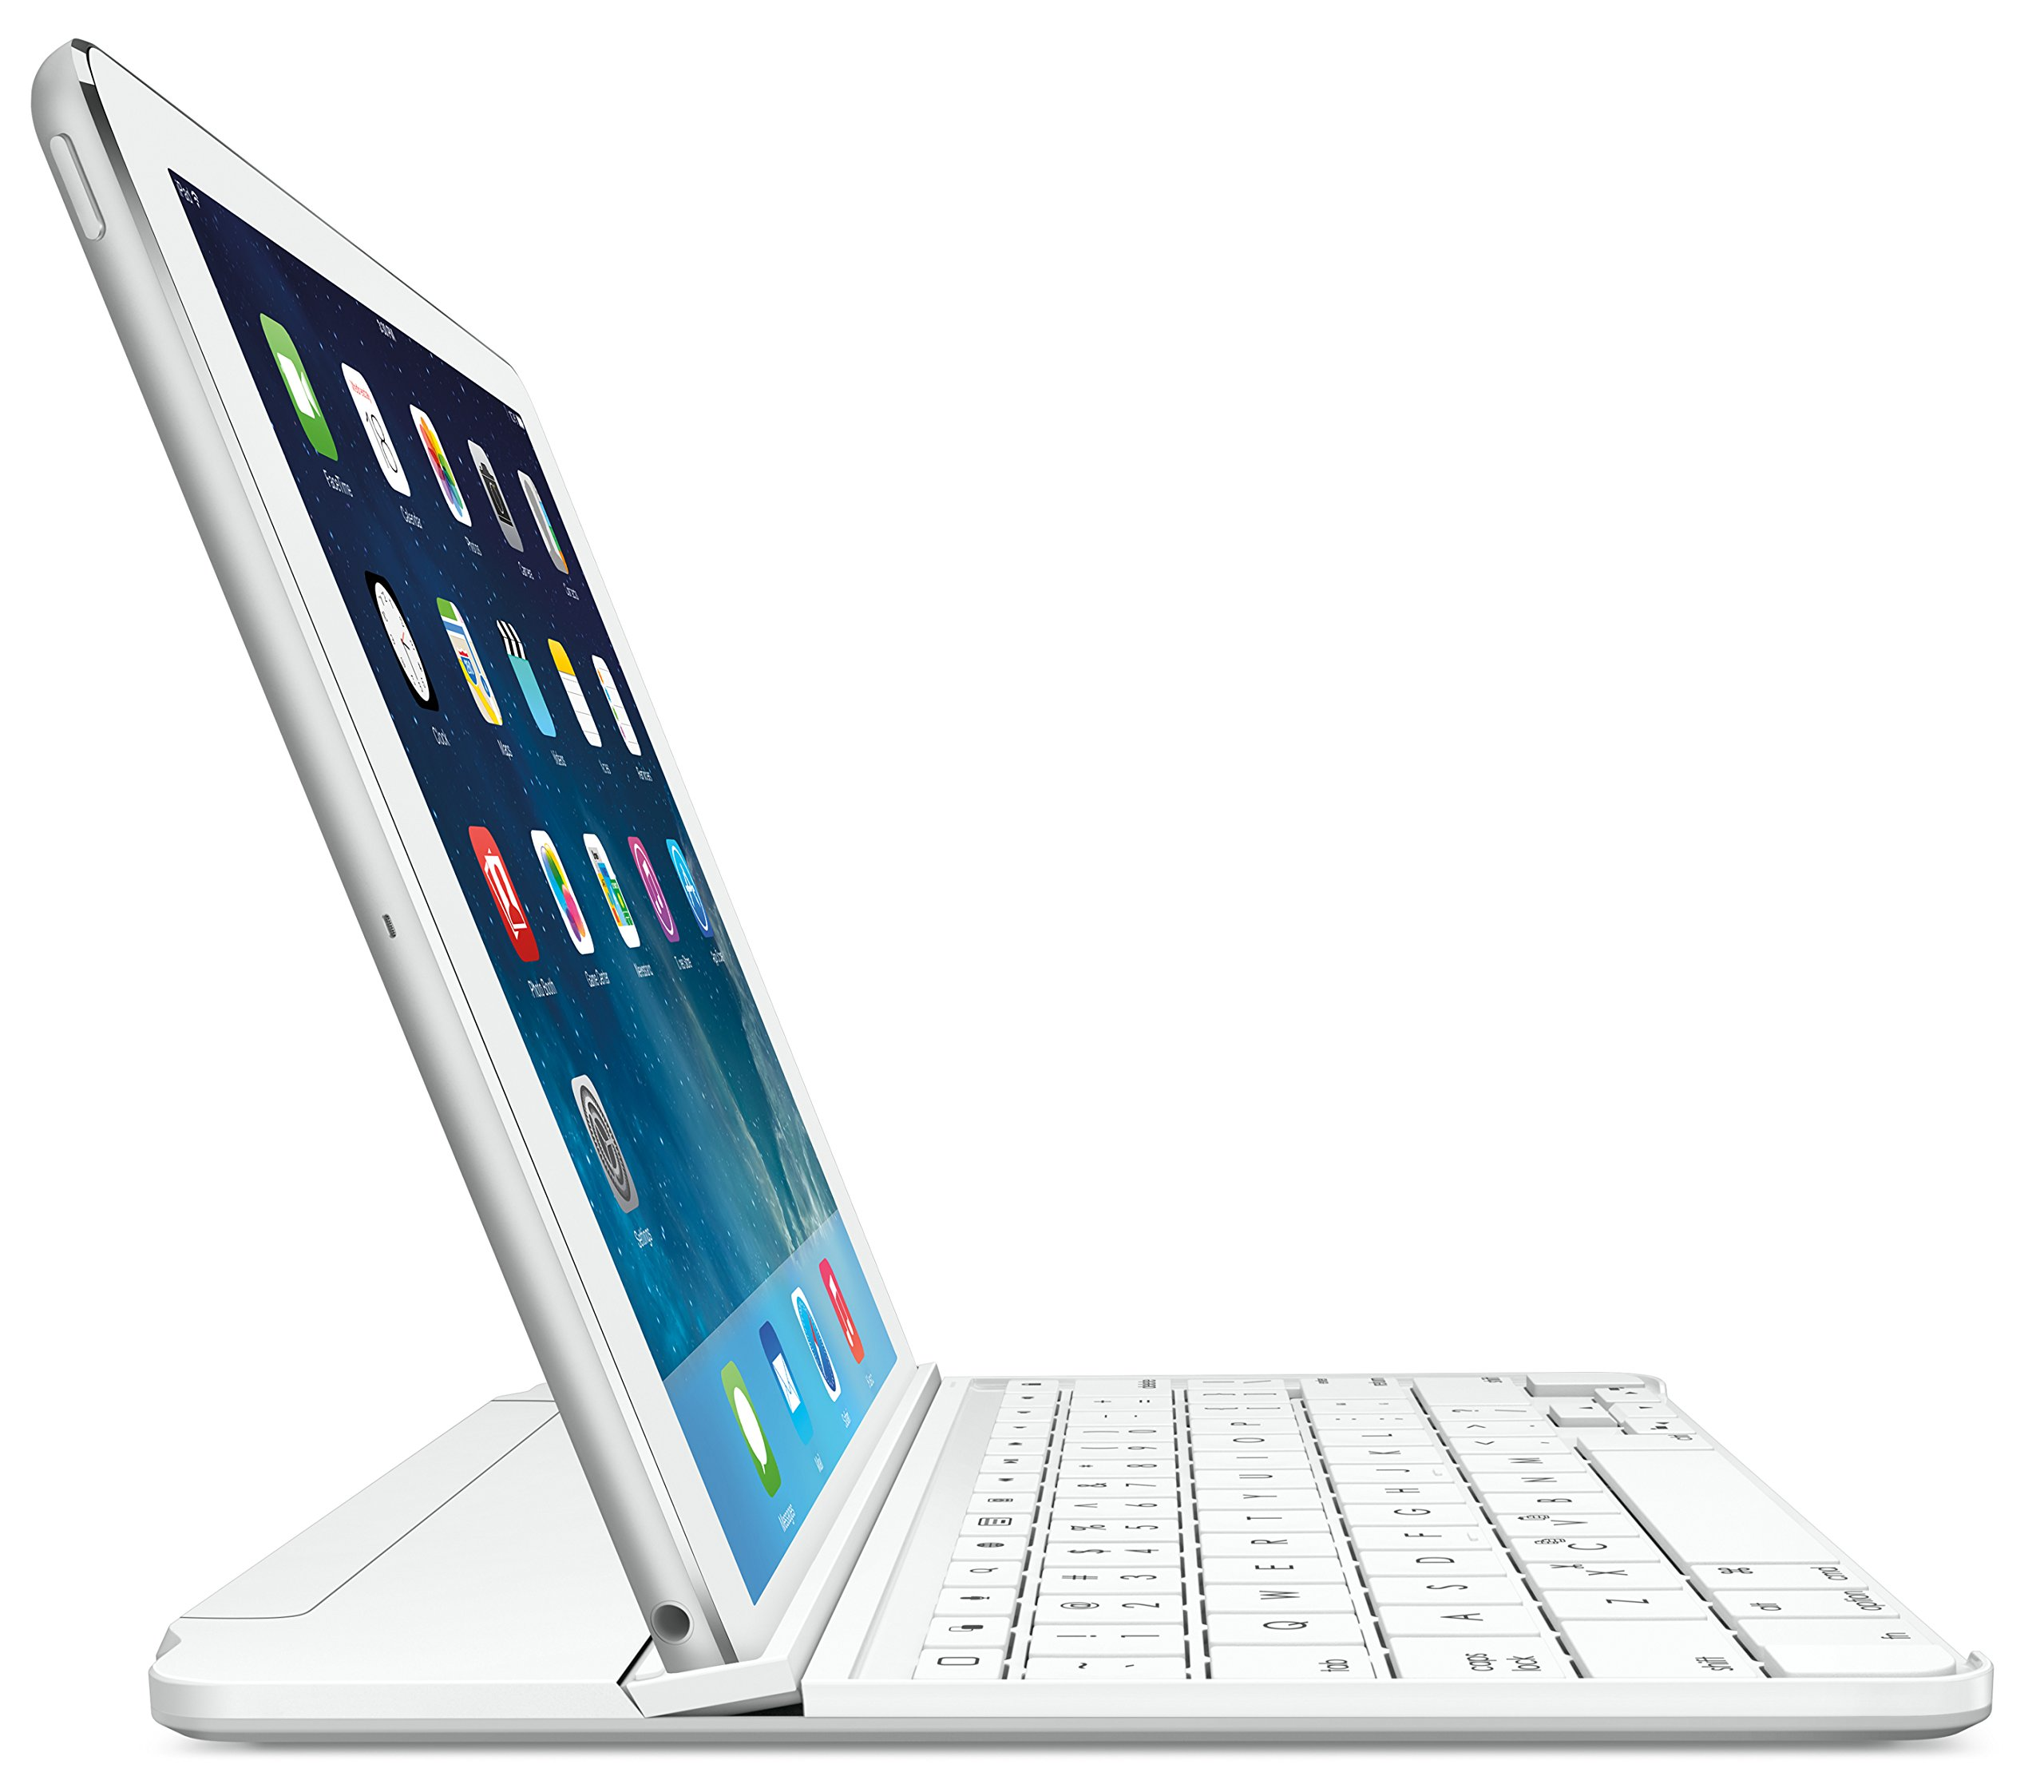 Logitech Ultrathin Magnetic Clip-On Keyboard Cover for iPad Air, Silver by Logitech (Image #1)